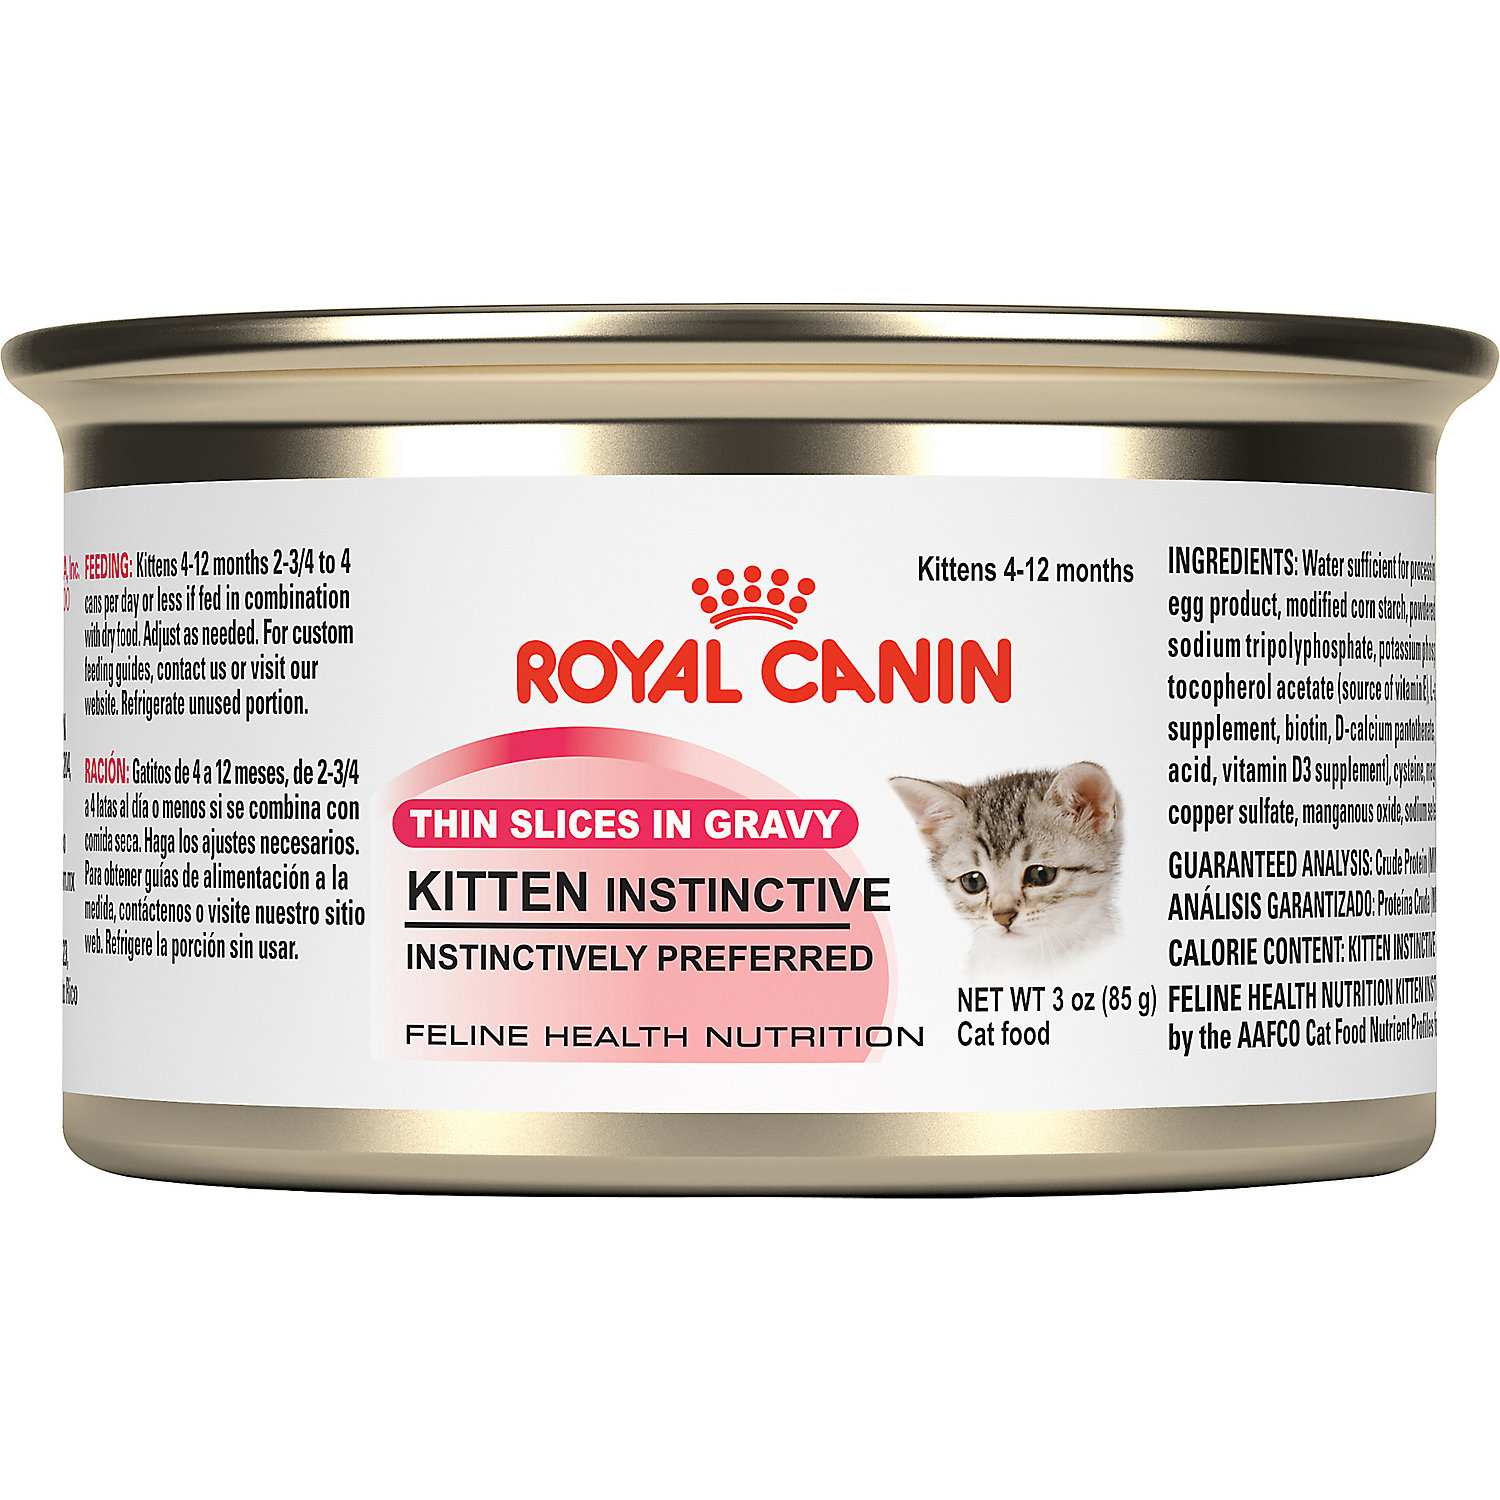 royal canin feline health nutrition kitten instinctive canned cat food ebay. Black Bedroom Furniture Sets. Home Design Ideas